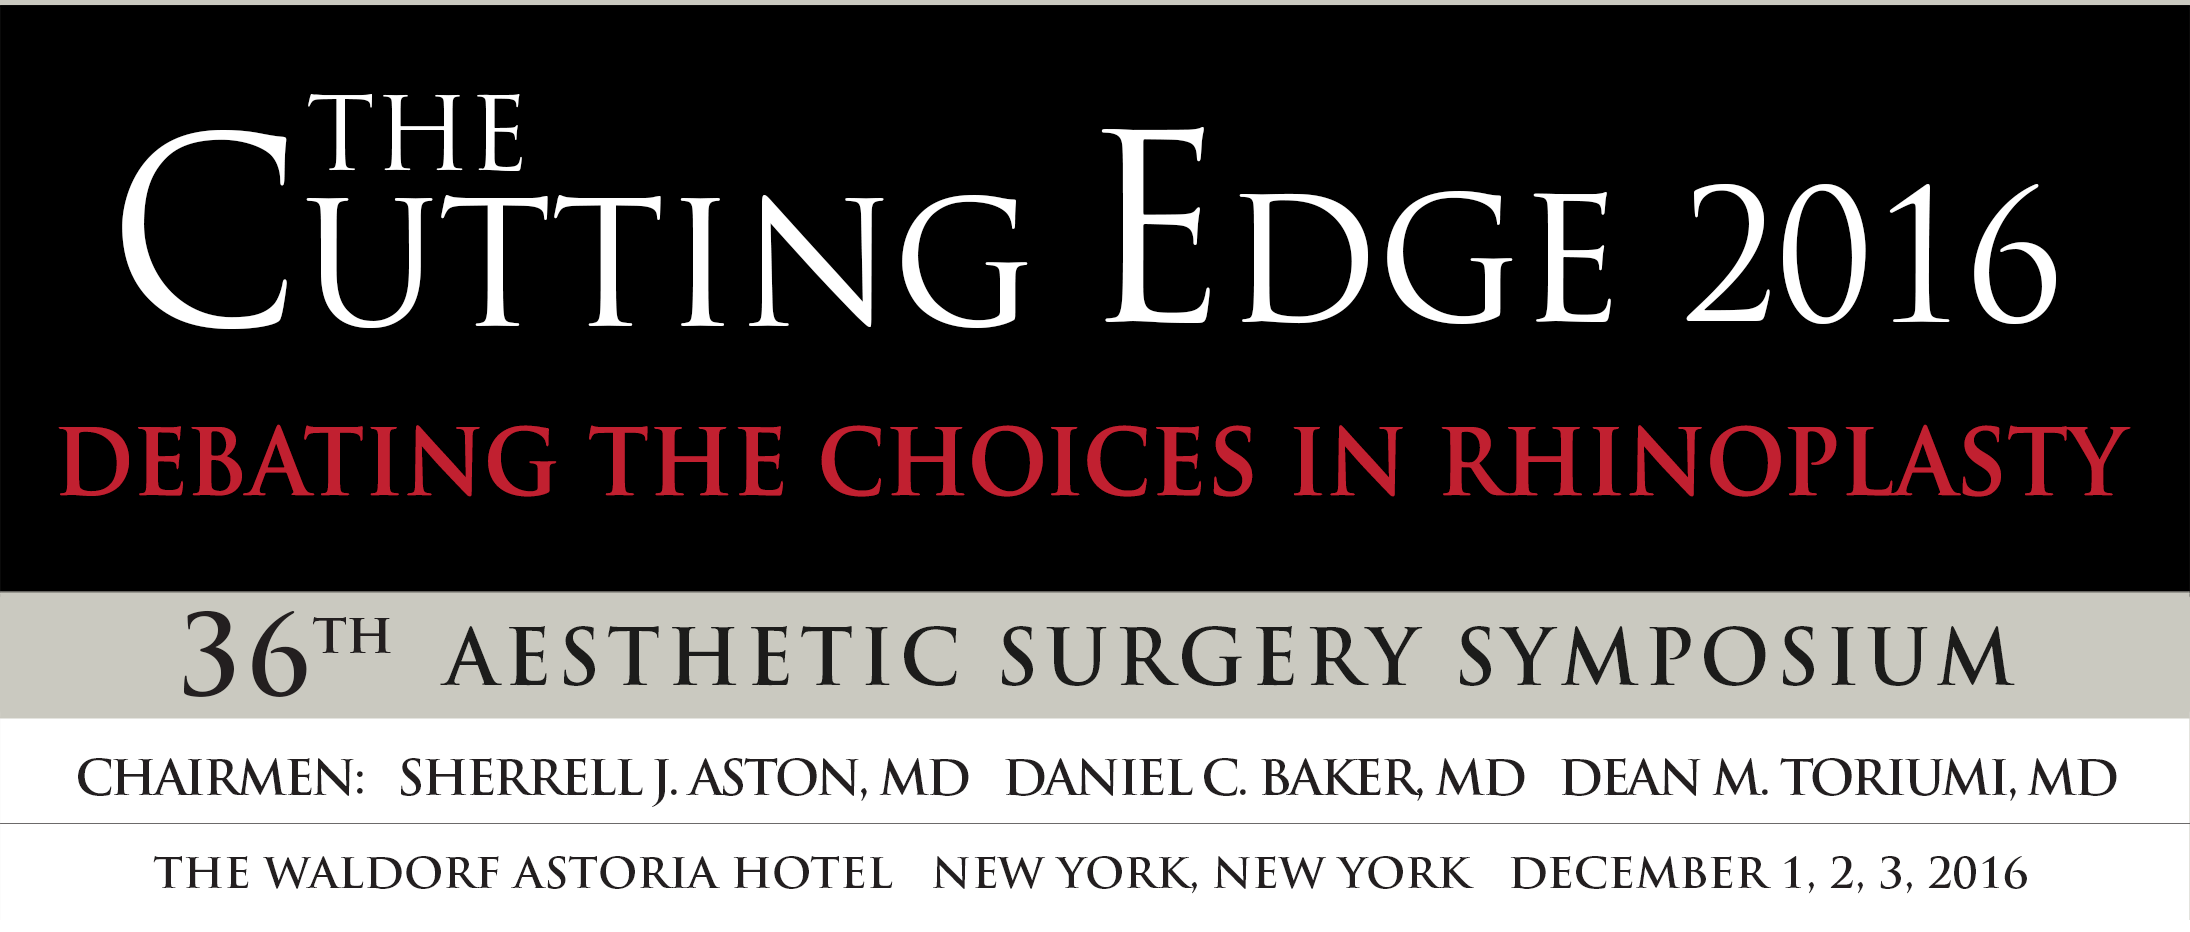 The Cutting Edge 2016 Aesthetic Surgery Symposium